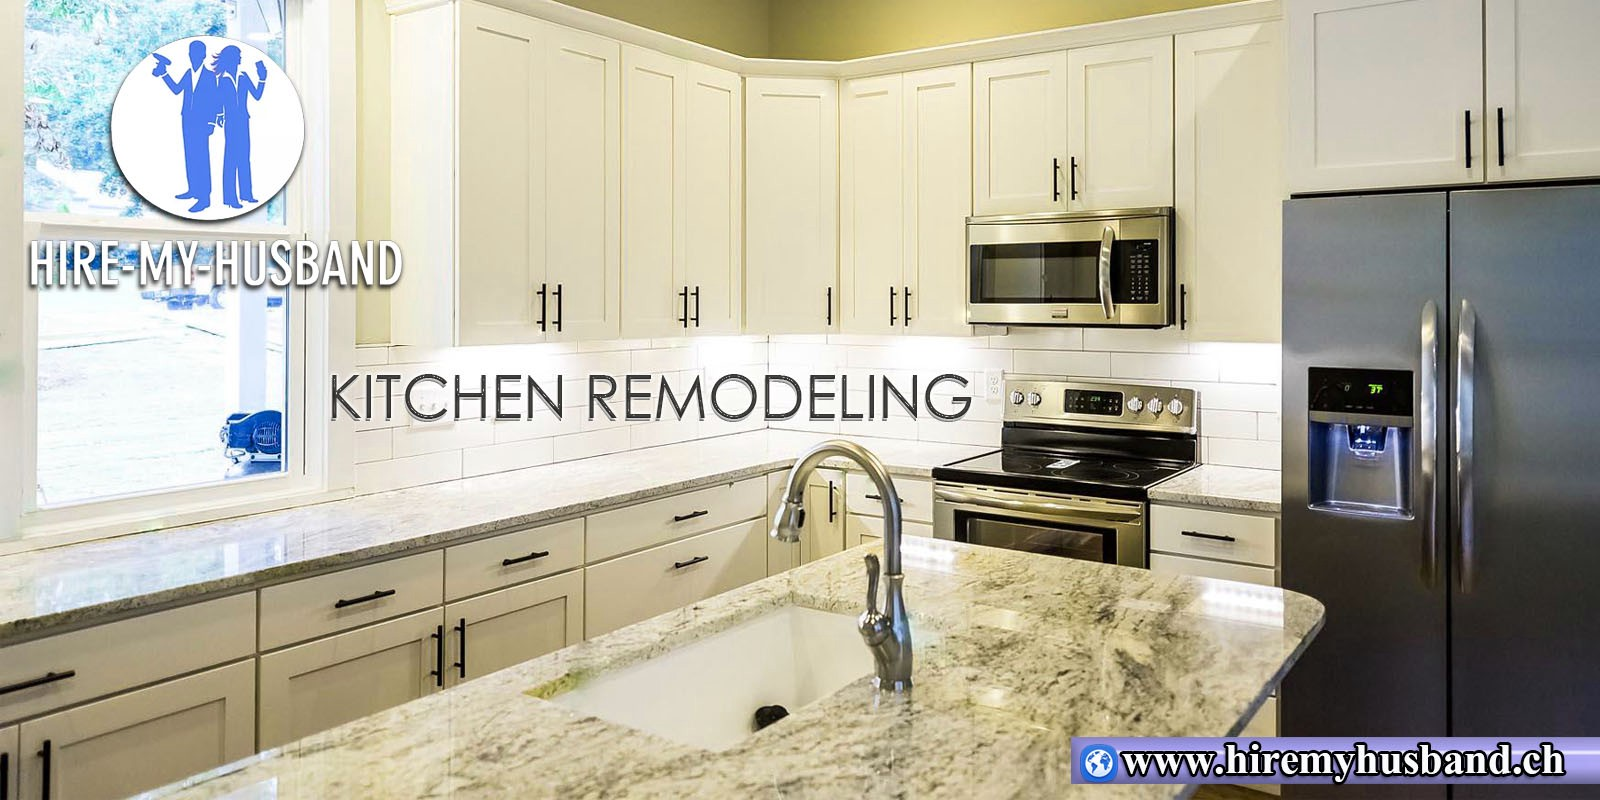 Best Ideas for Kitchen Remodeling and Home improvement